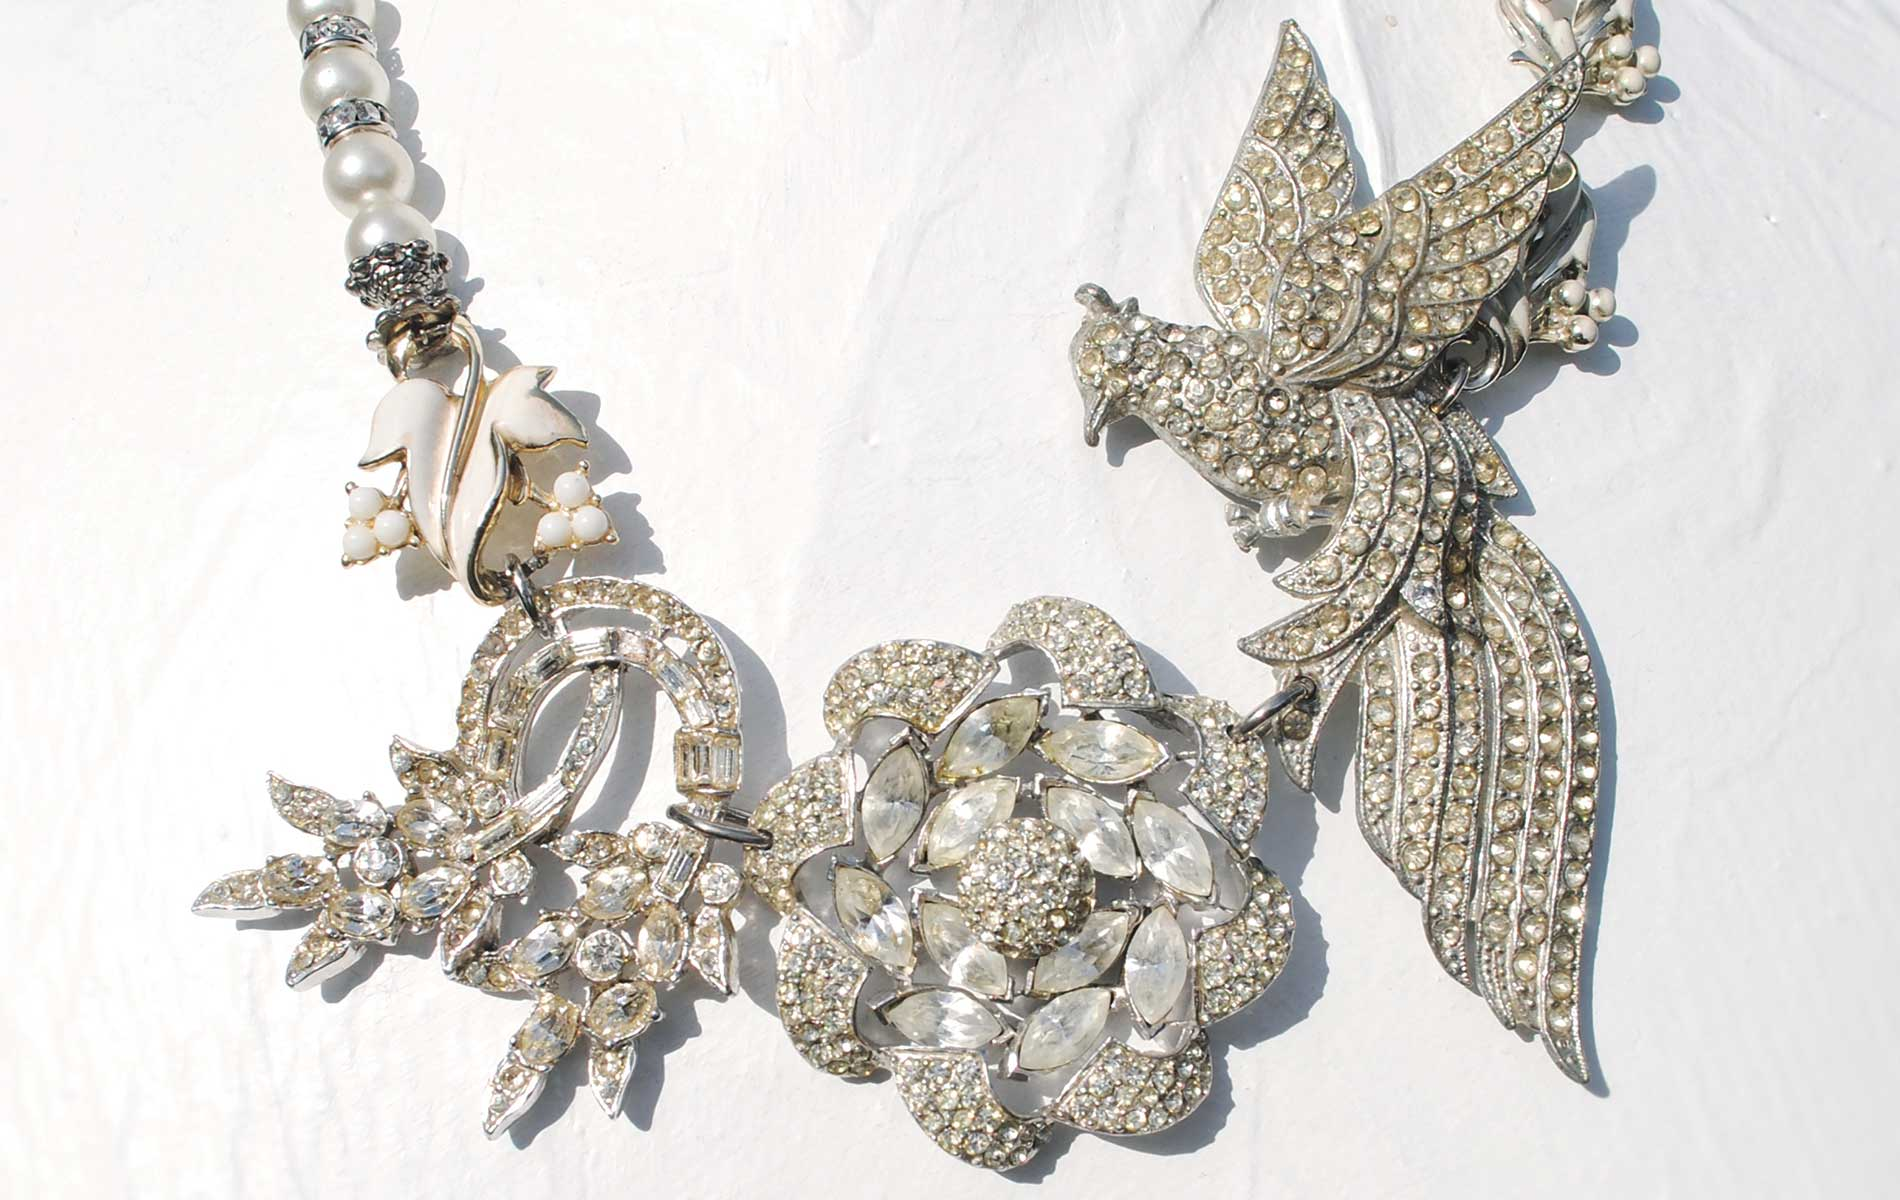 Bold Adorn By Samouce Statement Necklace Composed of Pearls and Rhinestones